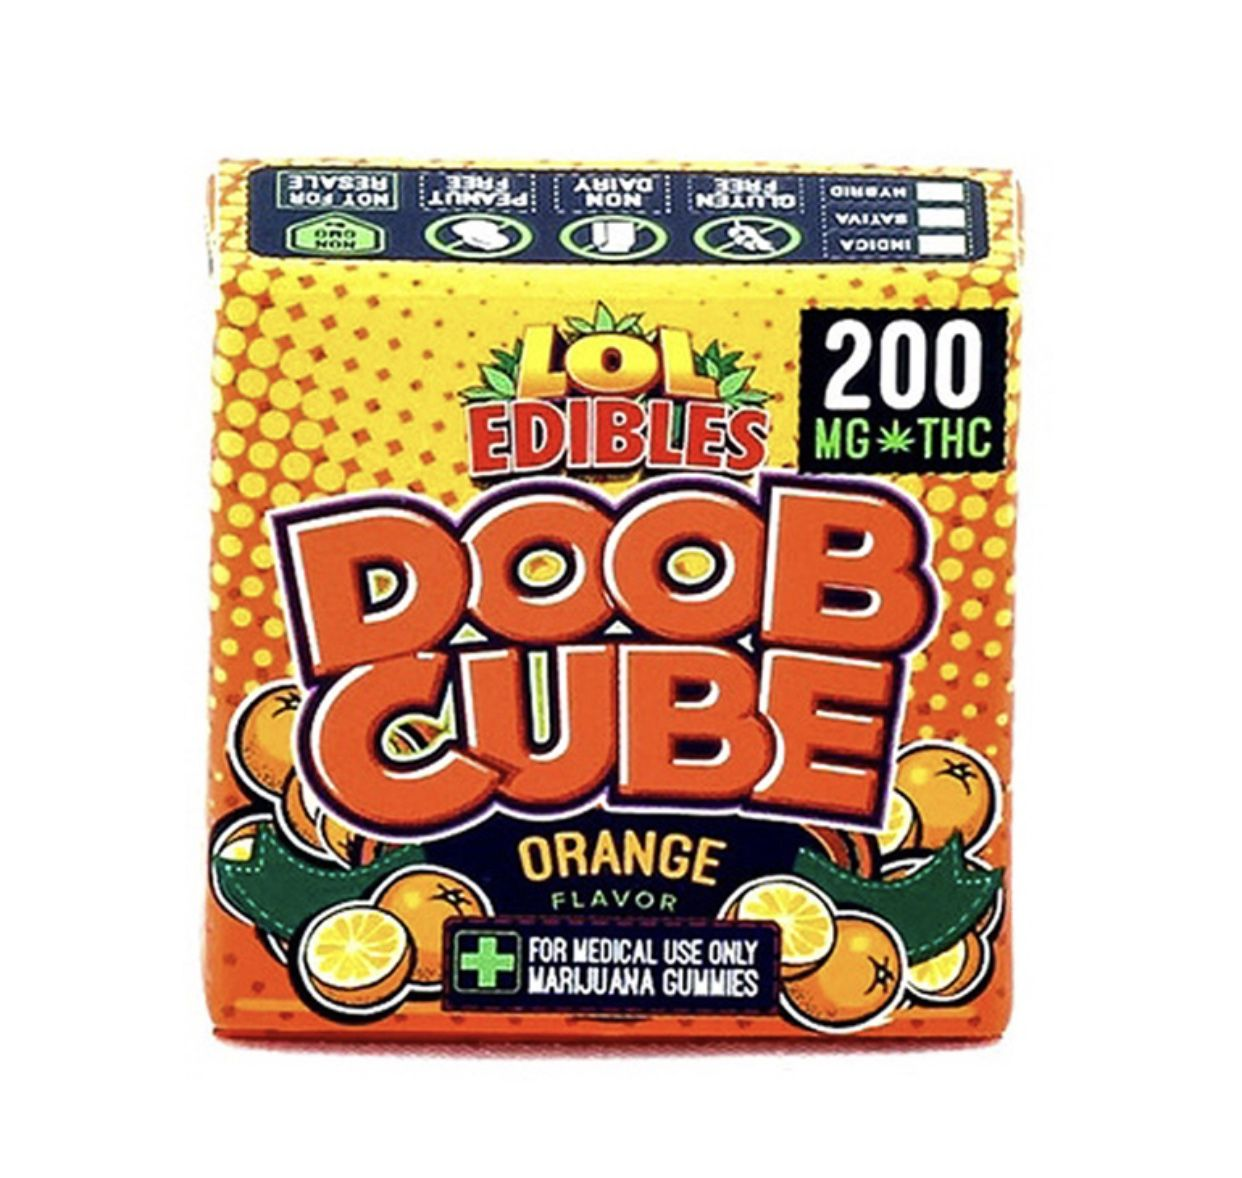 Orange Doob Cube - 200mg